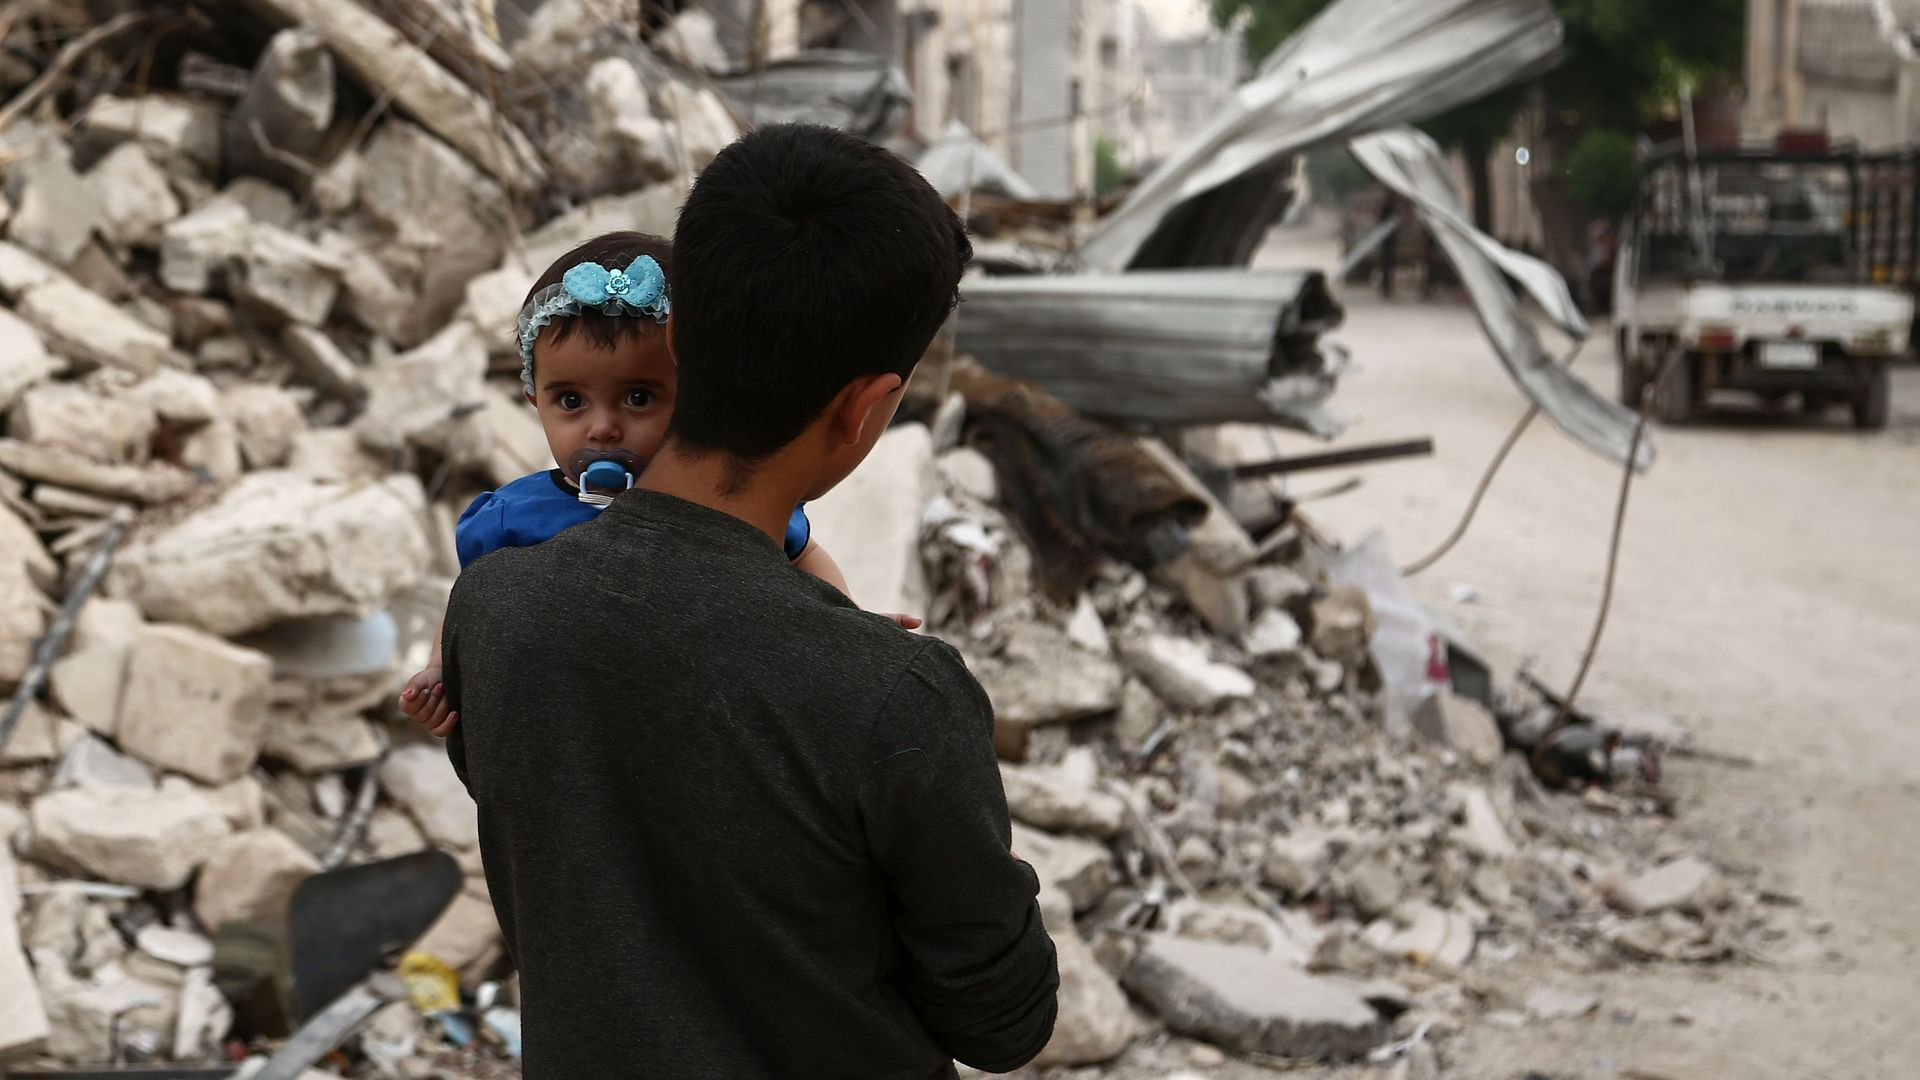 A Syrian youth walks by rubble holding a baby.